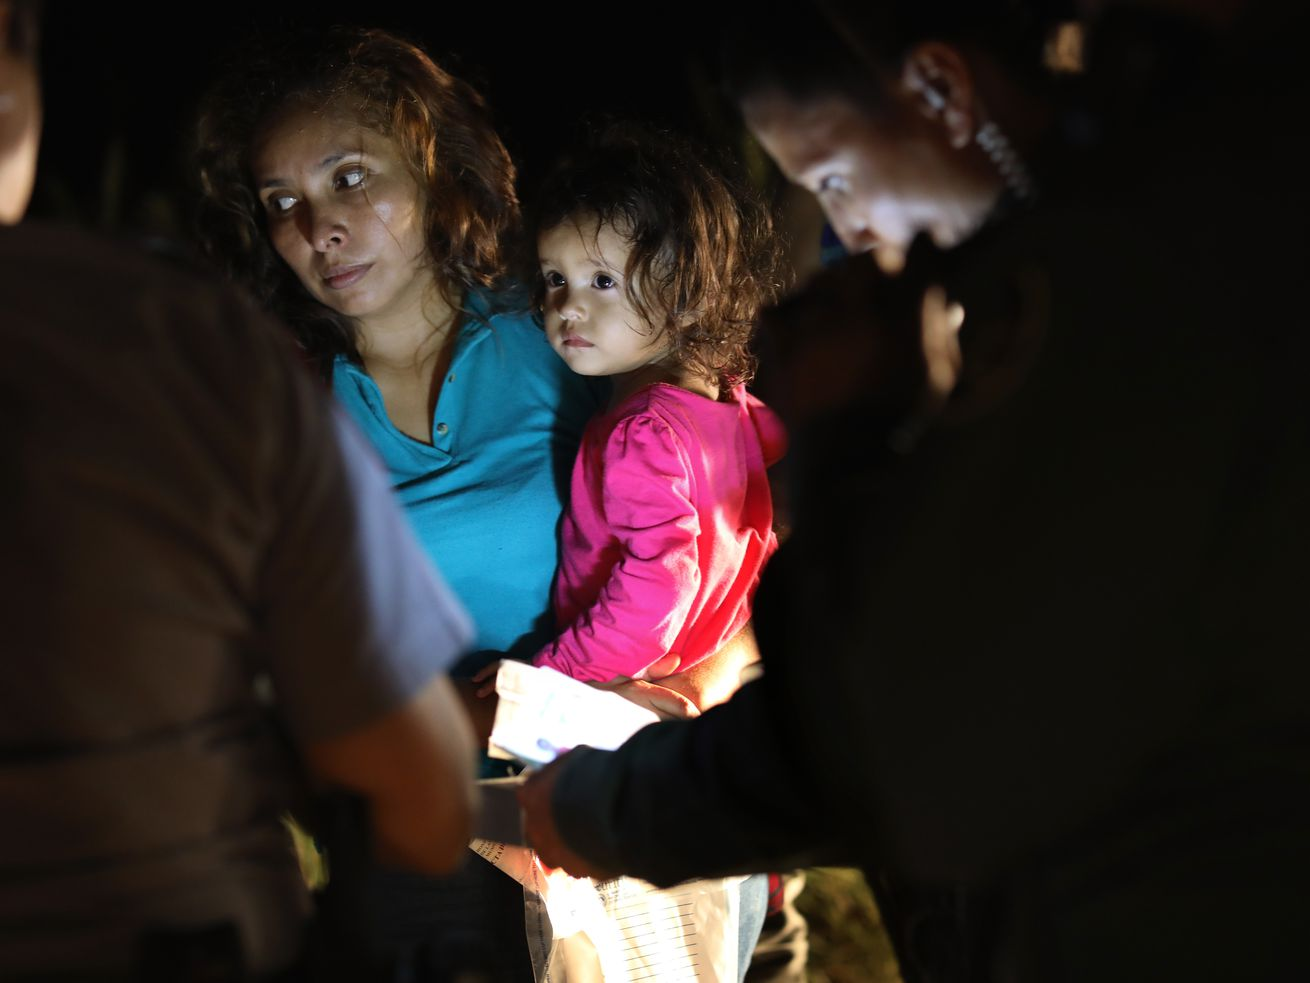 A Honduran mother holds her 2-year-old as US Border Patrol as agents review their papers near the US-Mexico border on June 12, 2018, in McAllen, Texas.